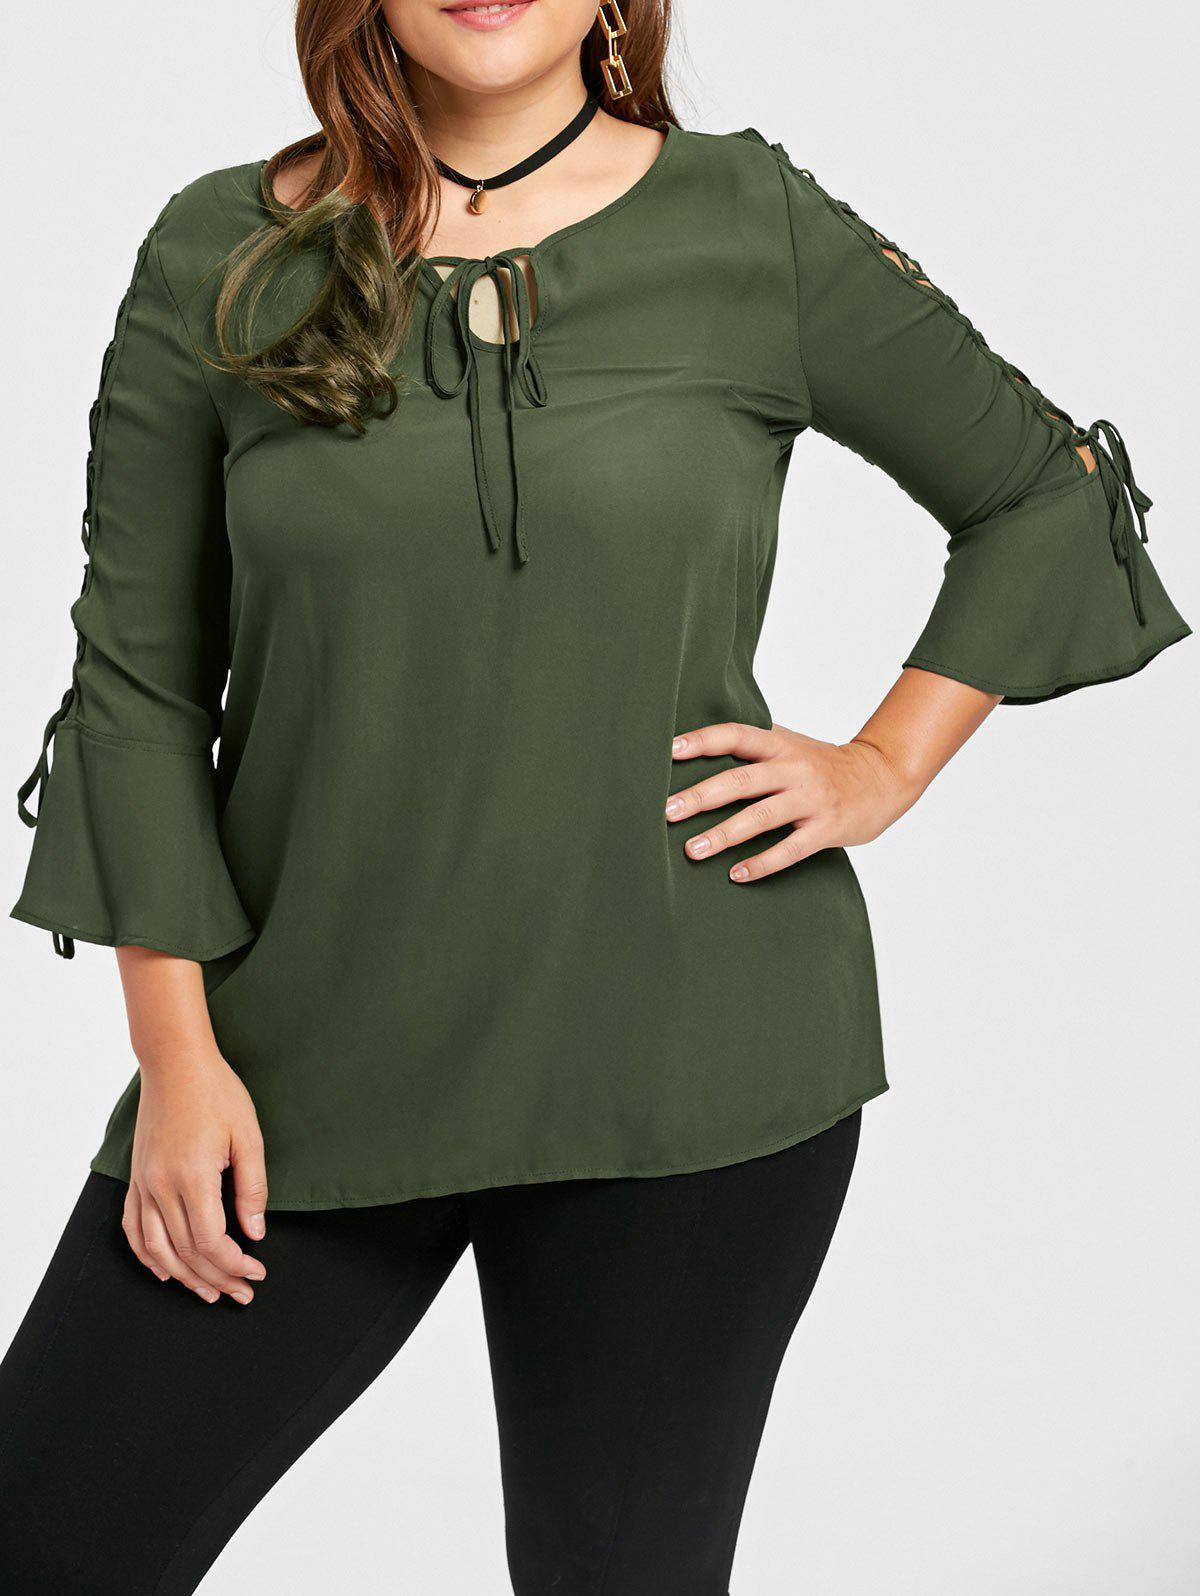 Bell Sleeve Lace Up Plus Size BlouseWOMEN<br><br>Size: 5XL; Color: OLIVE GREEN; Material: Polyester; Shirt Length: Regular; Sleeve Length: Three Quarter; Collar: Round Neck; Style: Fashion; Season: Fall,Spring; Sleeve Type: Flare Sleeve; Pattern Type: Solid; Weight: 0.2100kg; Package Contents: 1 x Blouse;